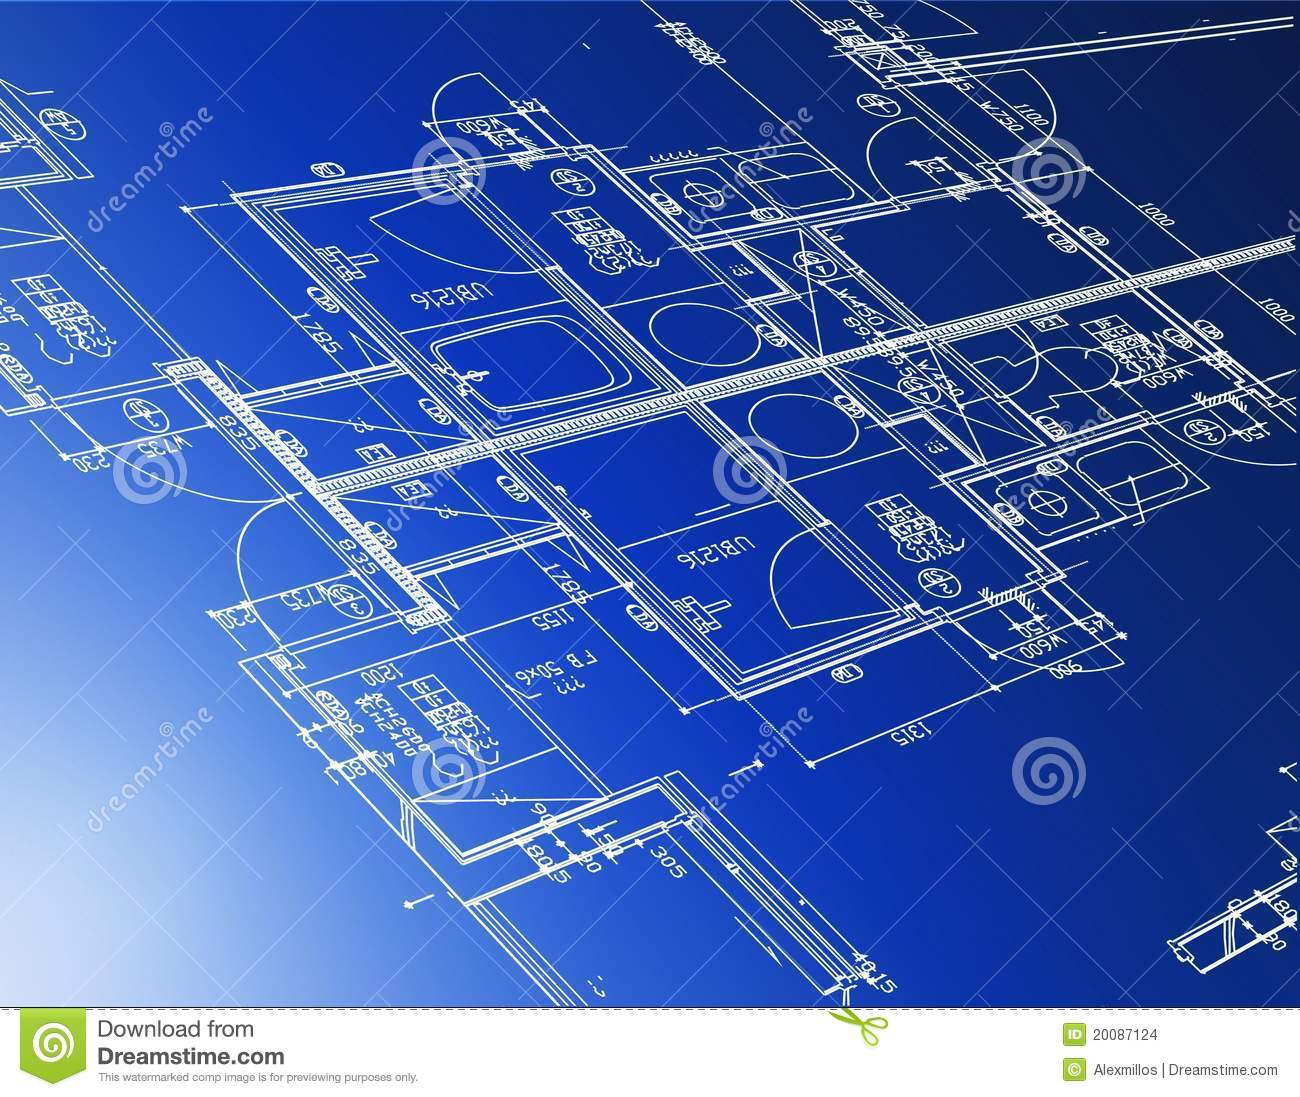 Architectural blueprints stock vector illustration of engineering architectural blueprints malvernweather Images